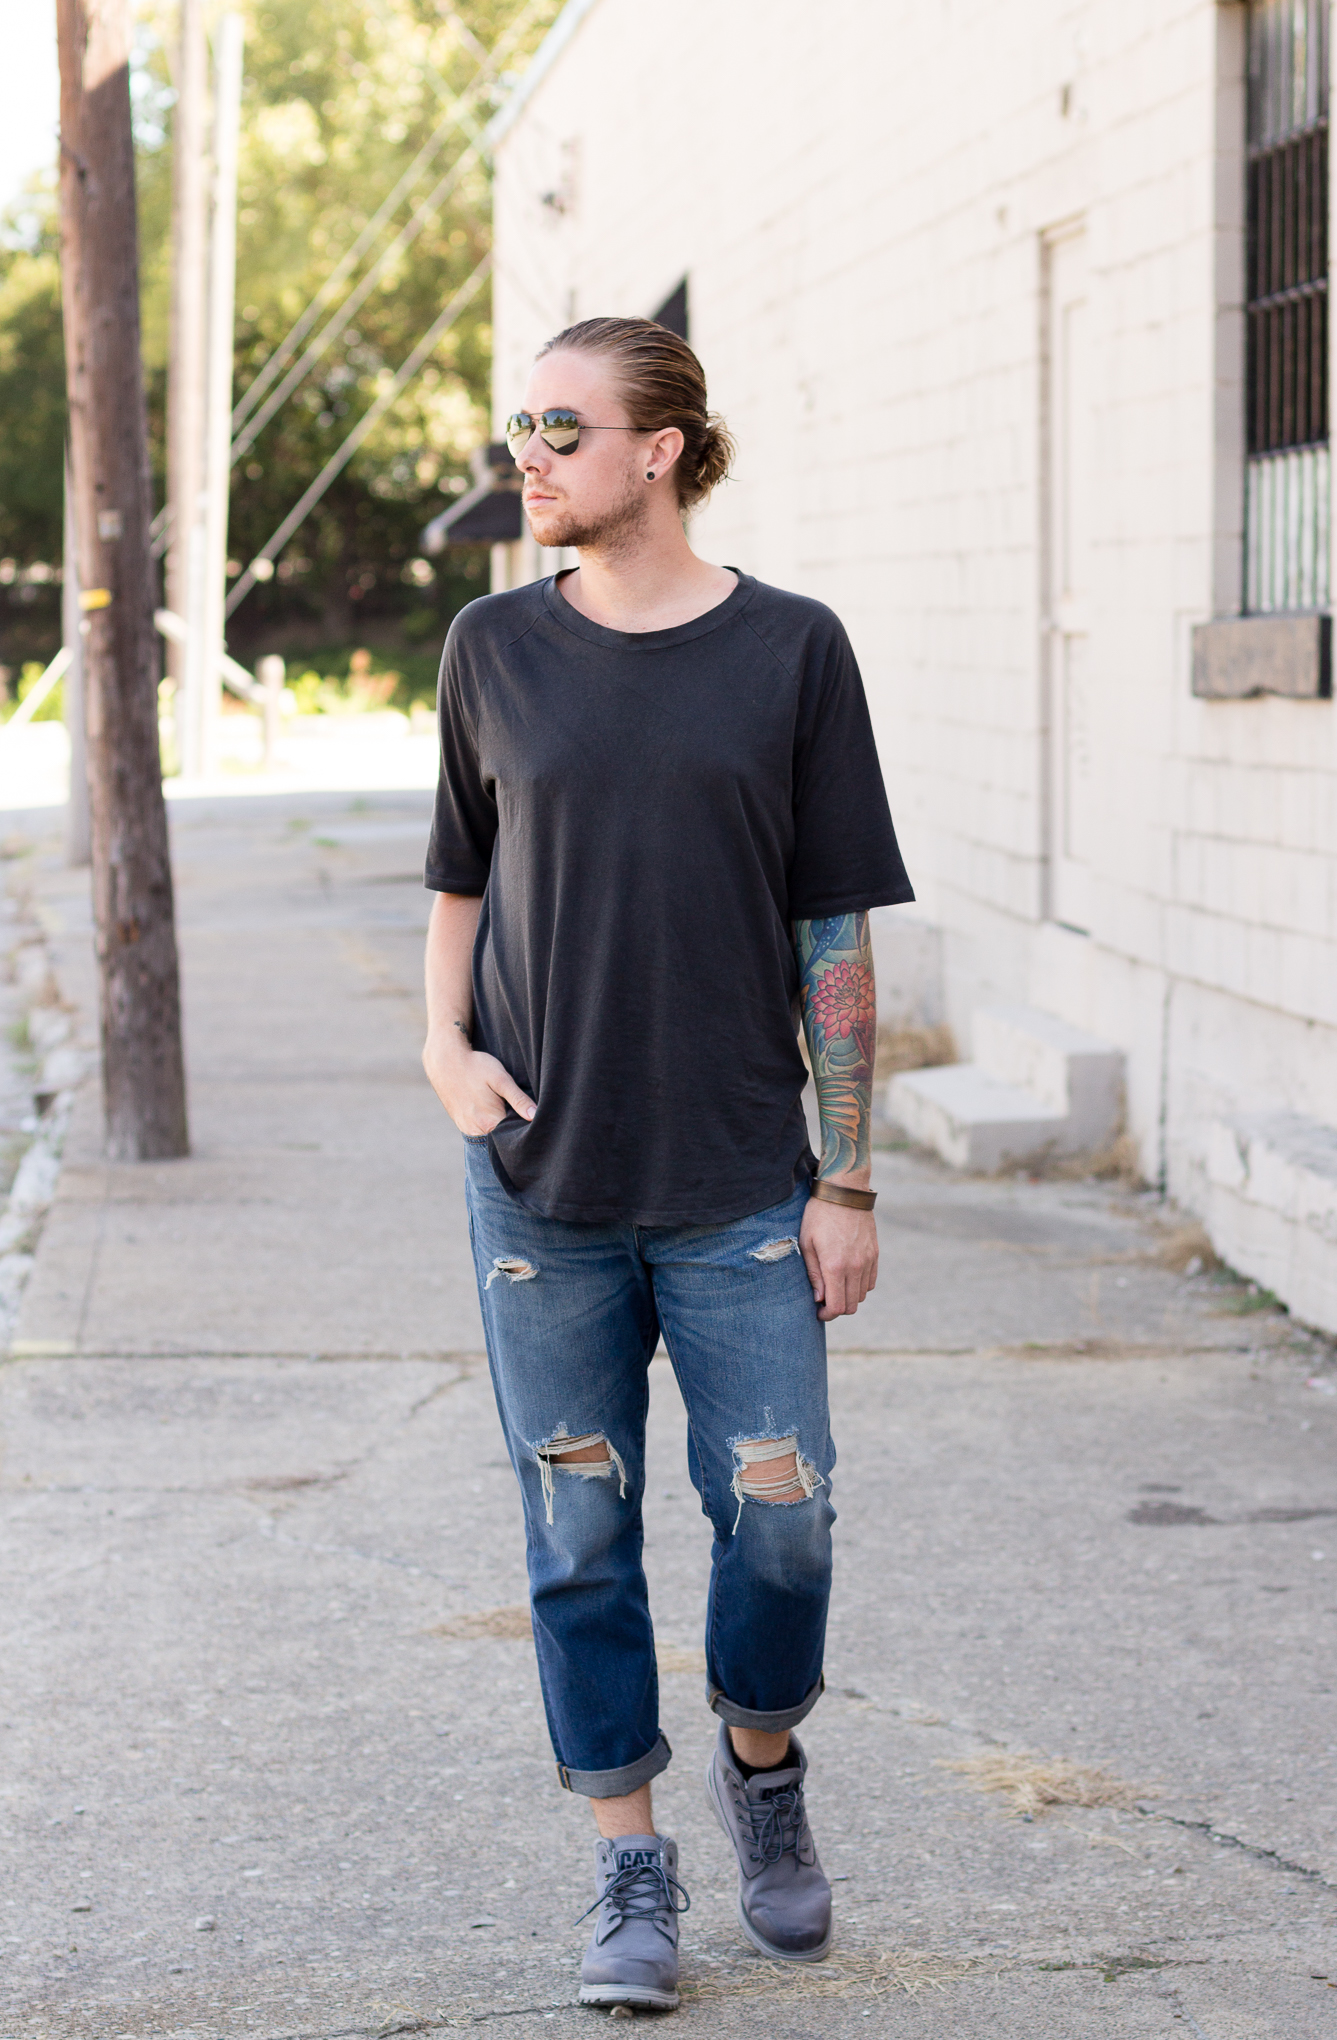 madewell denim, cat footwear, boyfriend fit jeans, how to wear oversized clothing, mens fashion blogger